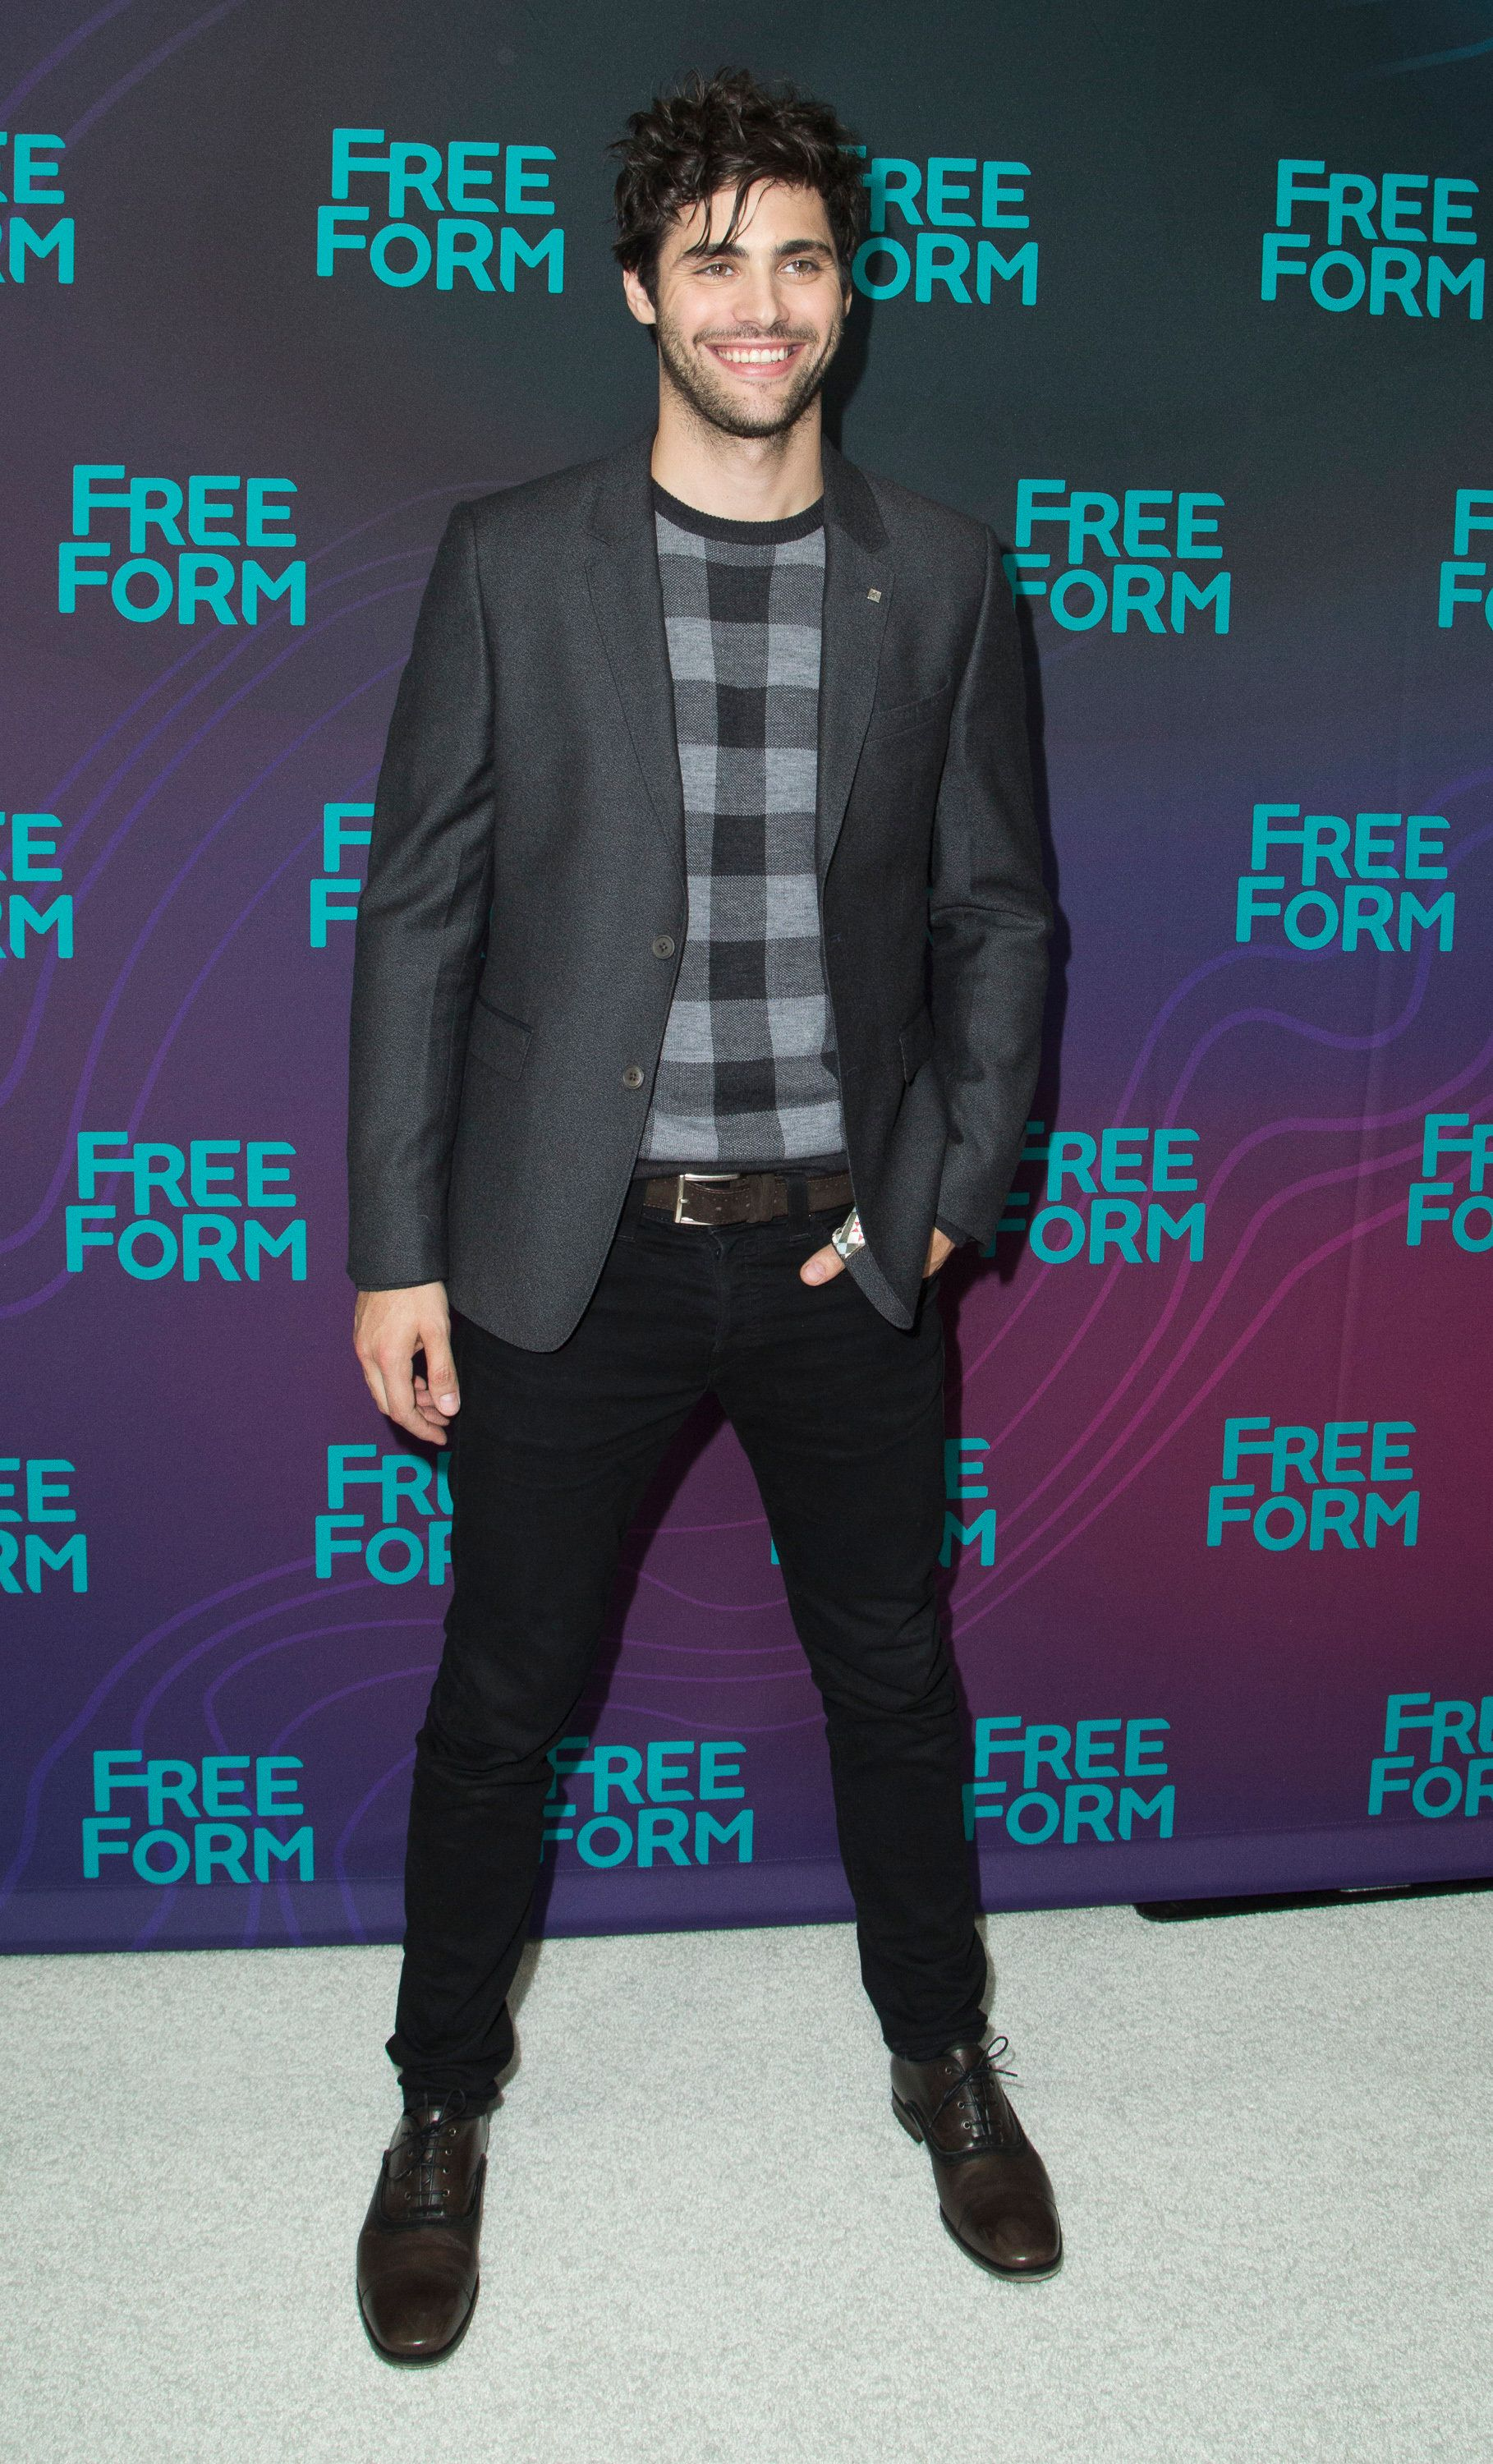 PASADENA, CA - JANUARY 09:  Actor Matthew Daddario attends the 2016 Winter TCA Tour - Disney/ABC at Langham Hotel on January 9, 2016 in Pasadena, California.  (Photo by Vincent Sandoval/WireImage)